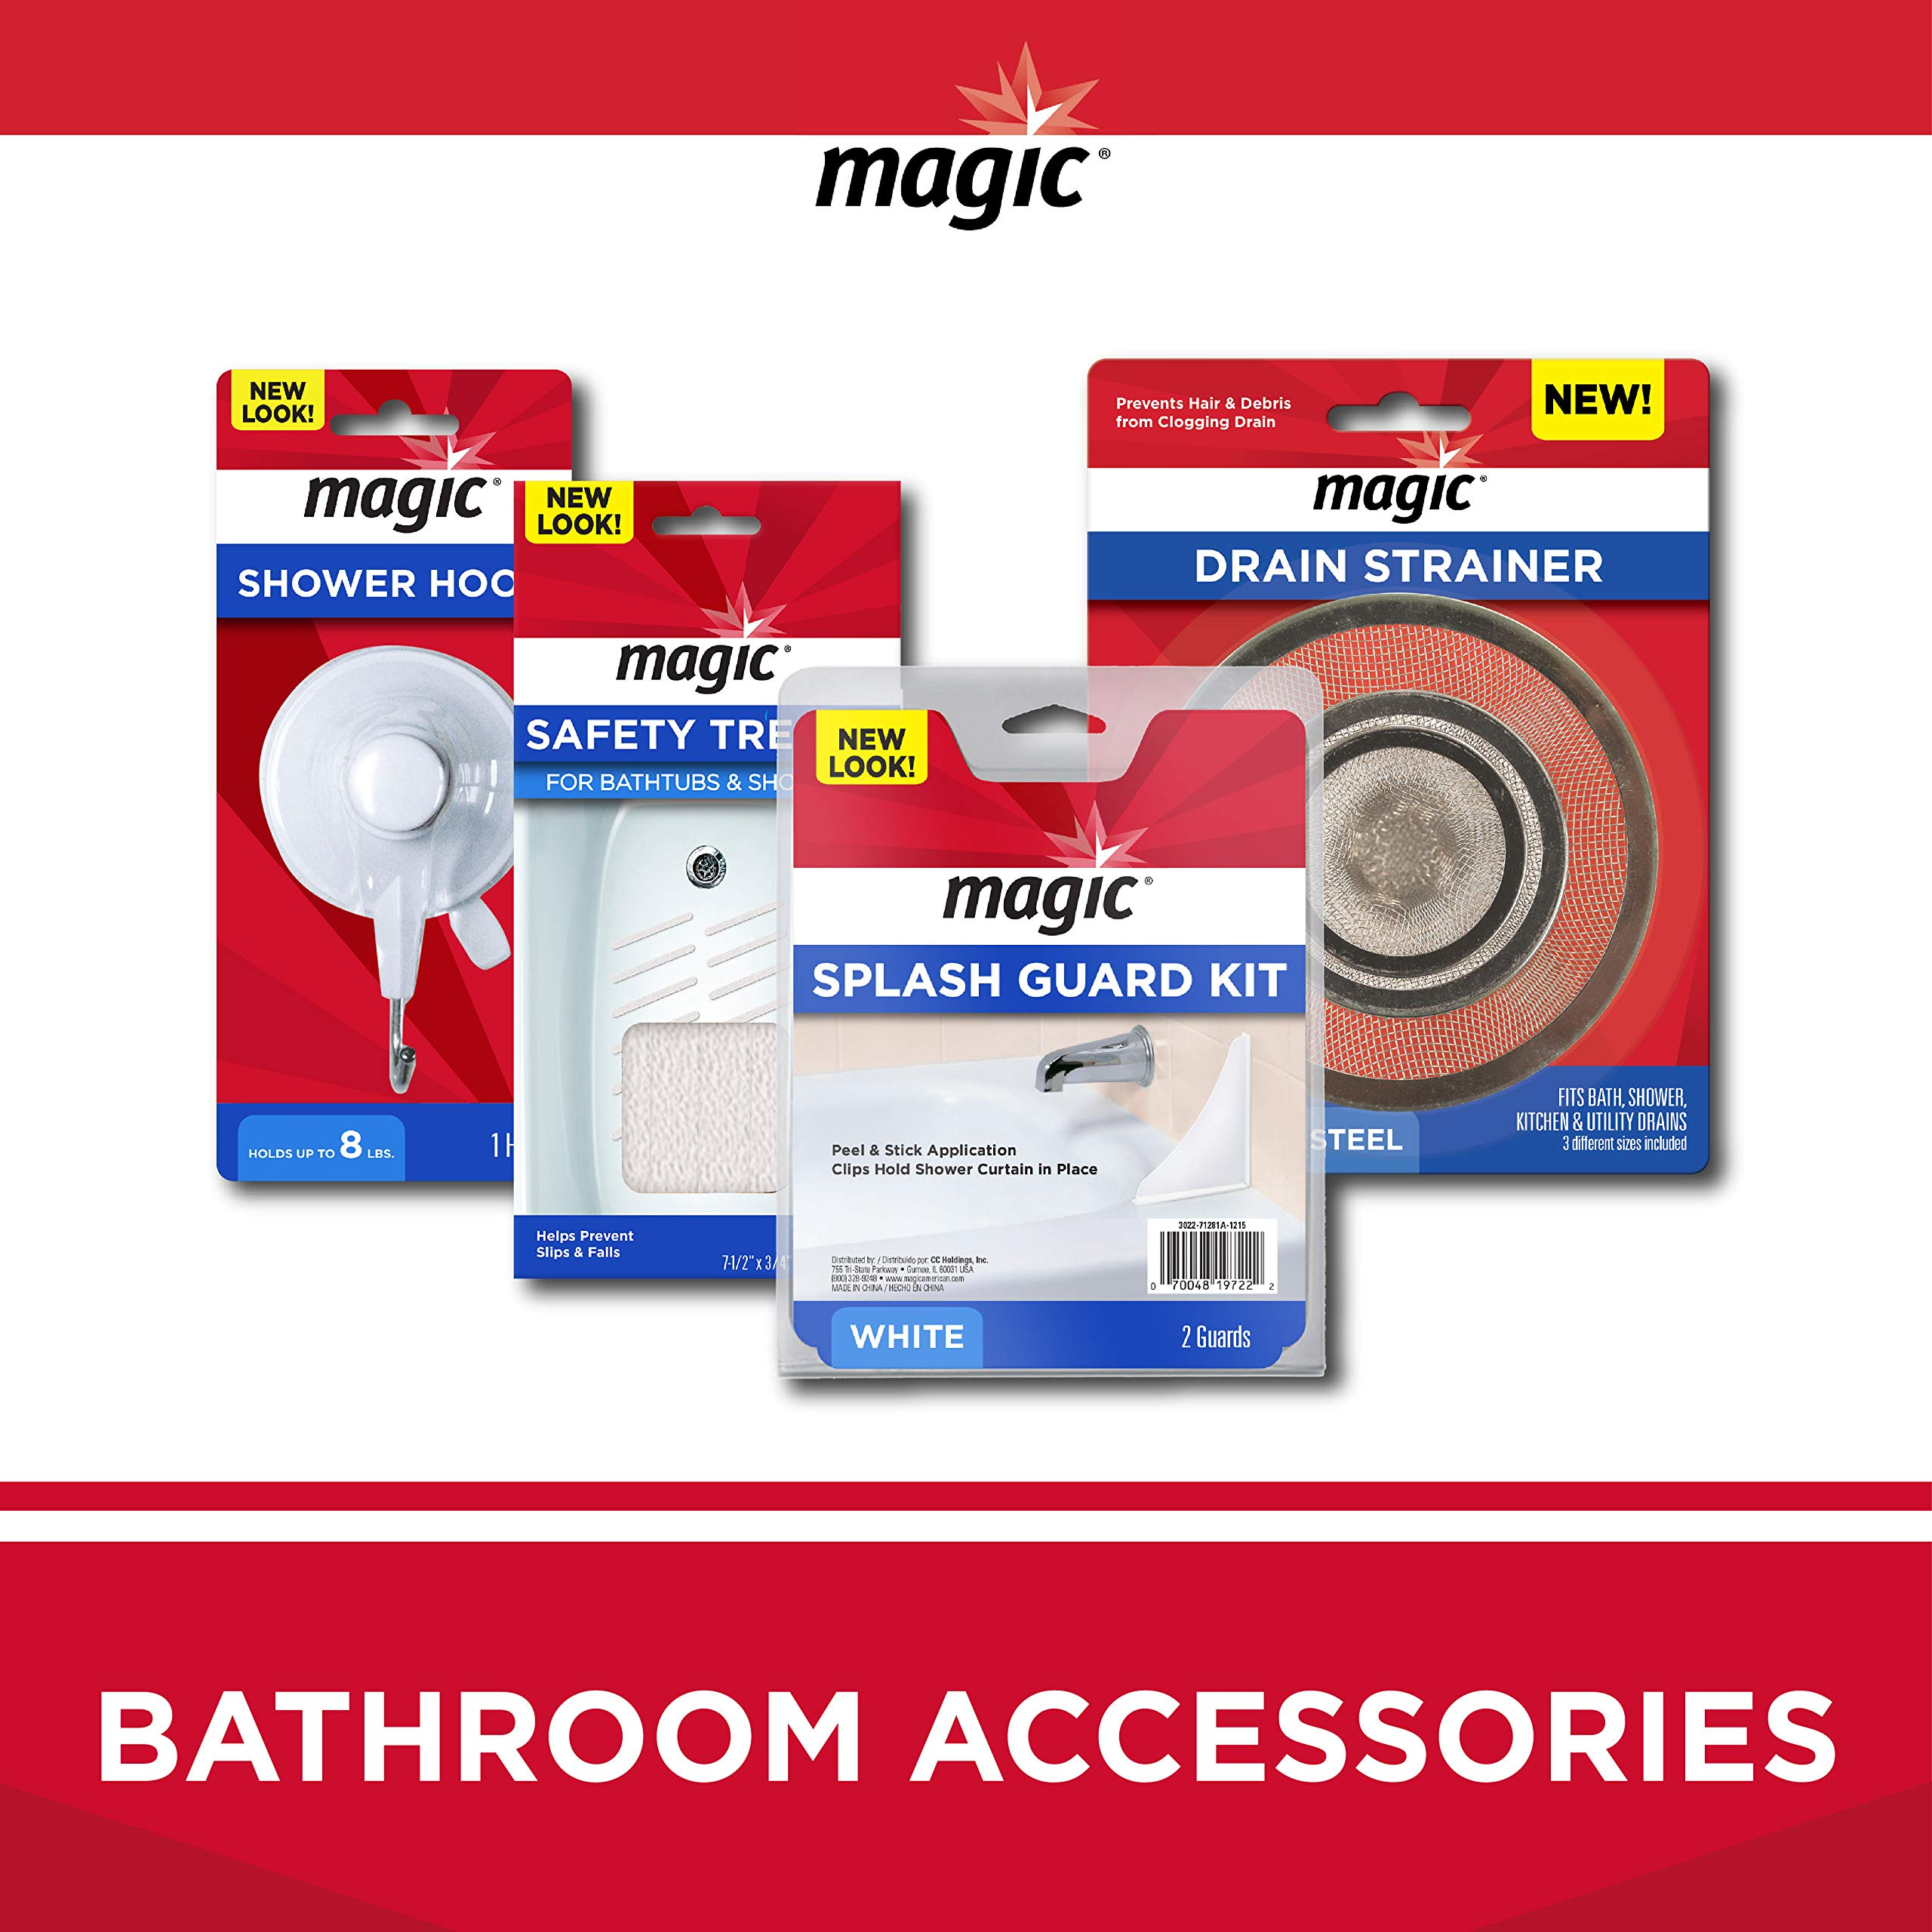 Amazon.com: Magic: Bathroom Accessories